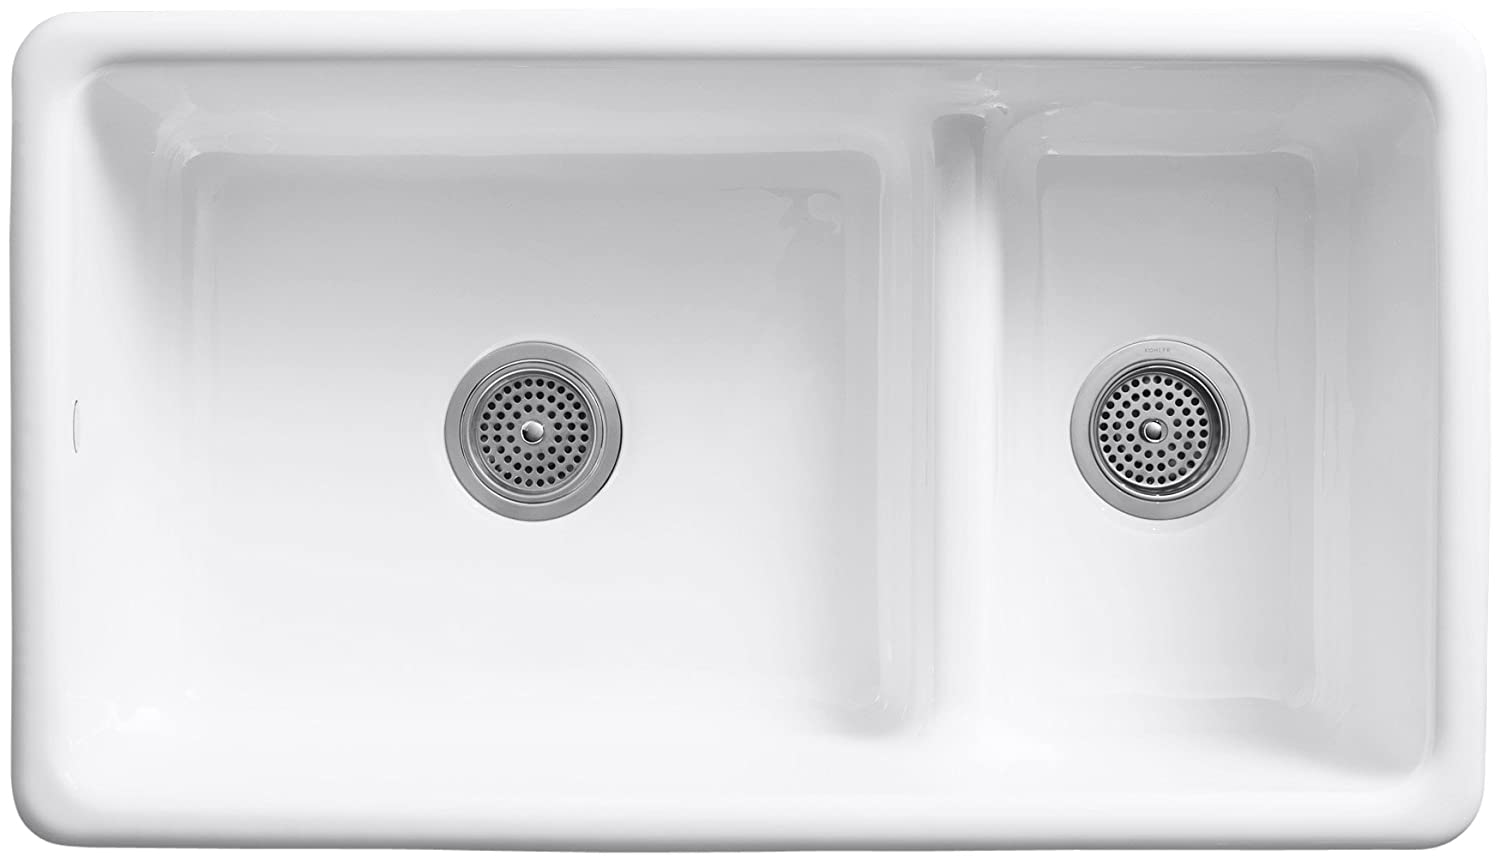 B white kitchen sink KOHLER K 0 Iron Tones Smart Divide Self Rimming or Undercounter Kitchen Sink White White Porcelain Undermount Kitchen Sink Amazon com